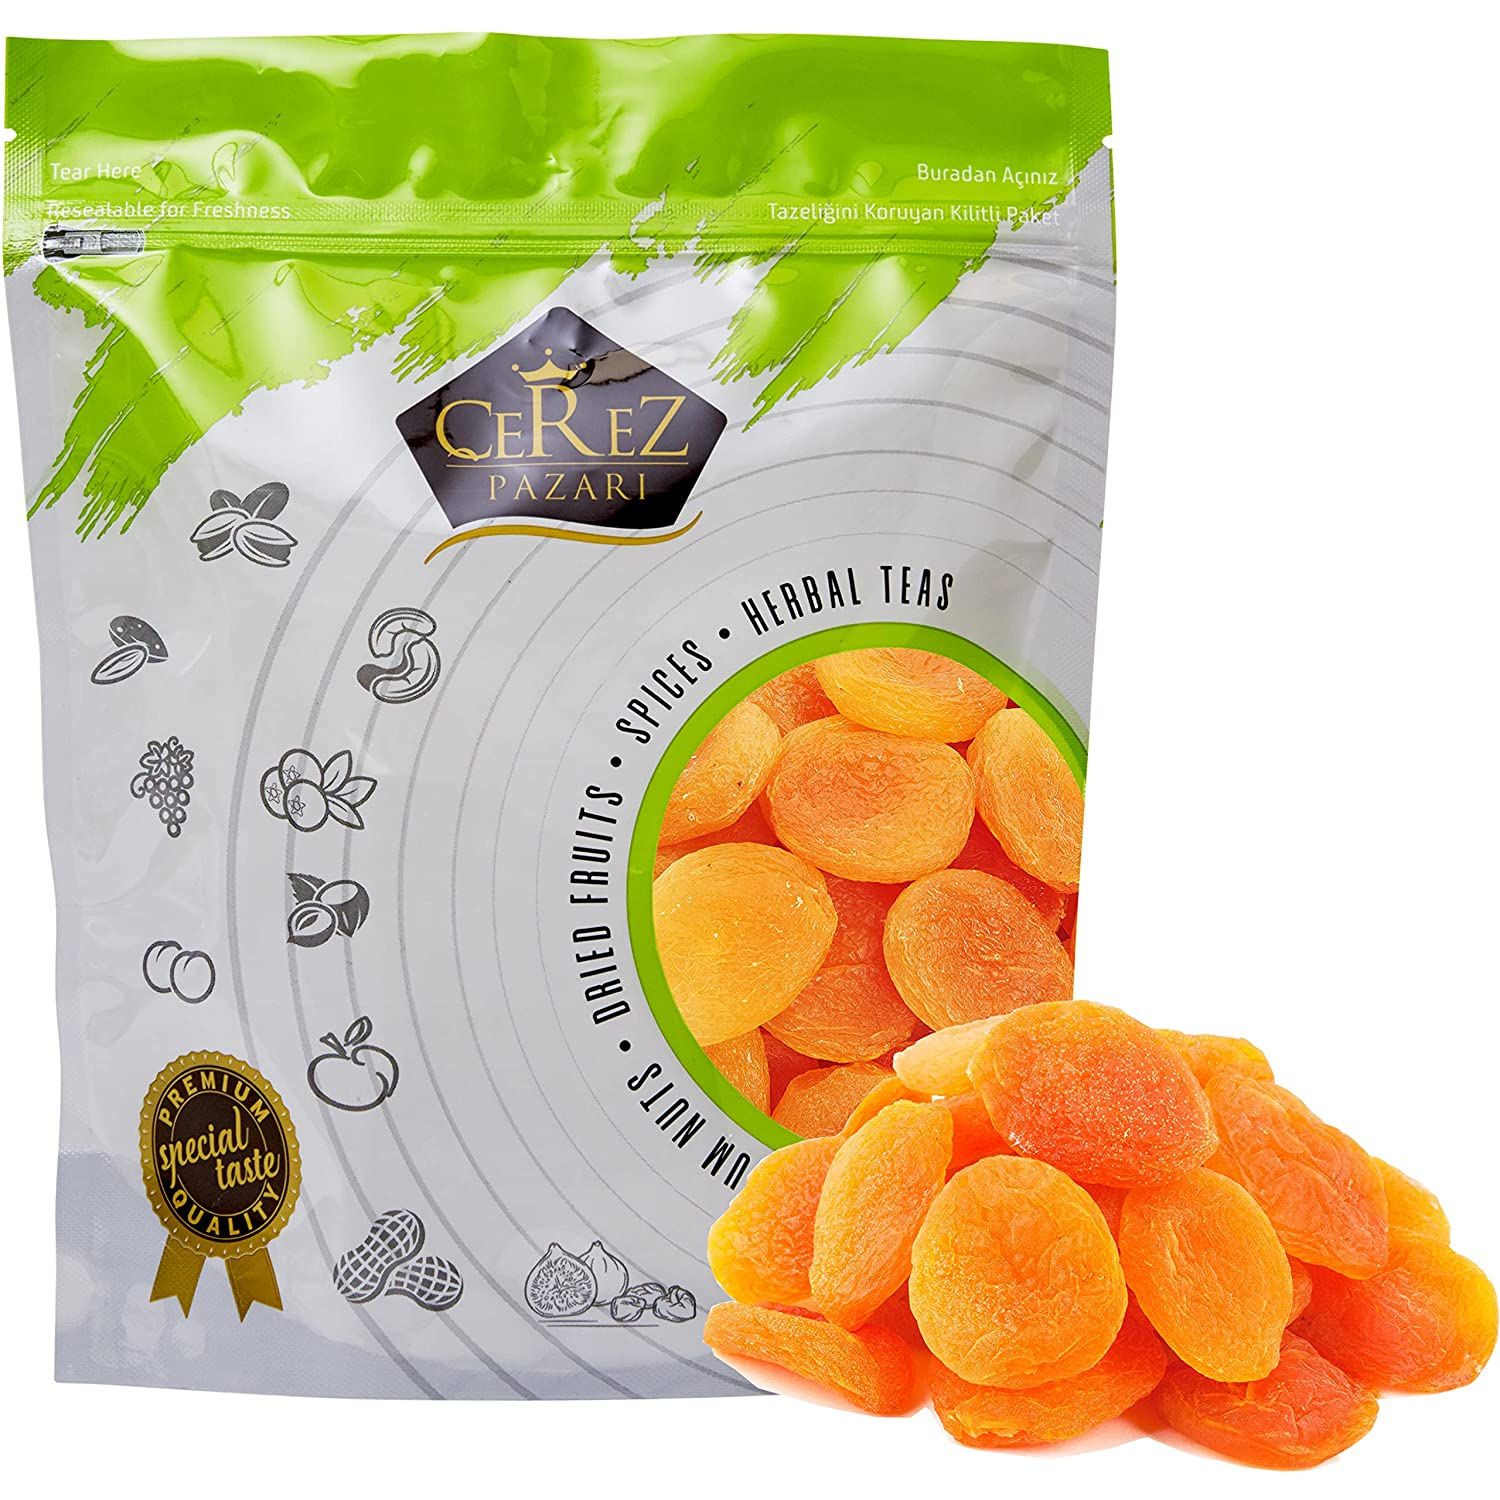 Cerez Pazari Dried Apricots Special sale item Turkish Extra Jumbo in lbs 1.5 Size online shop